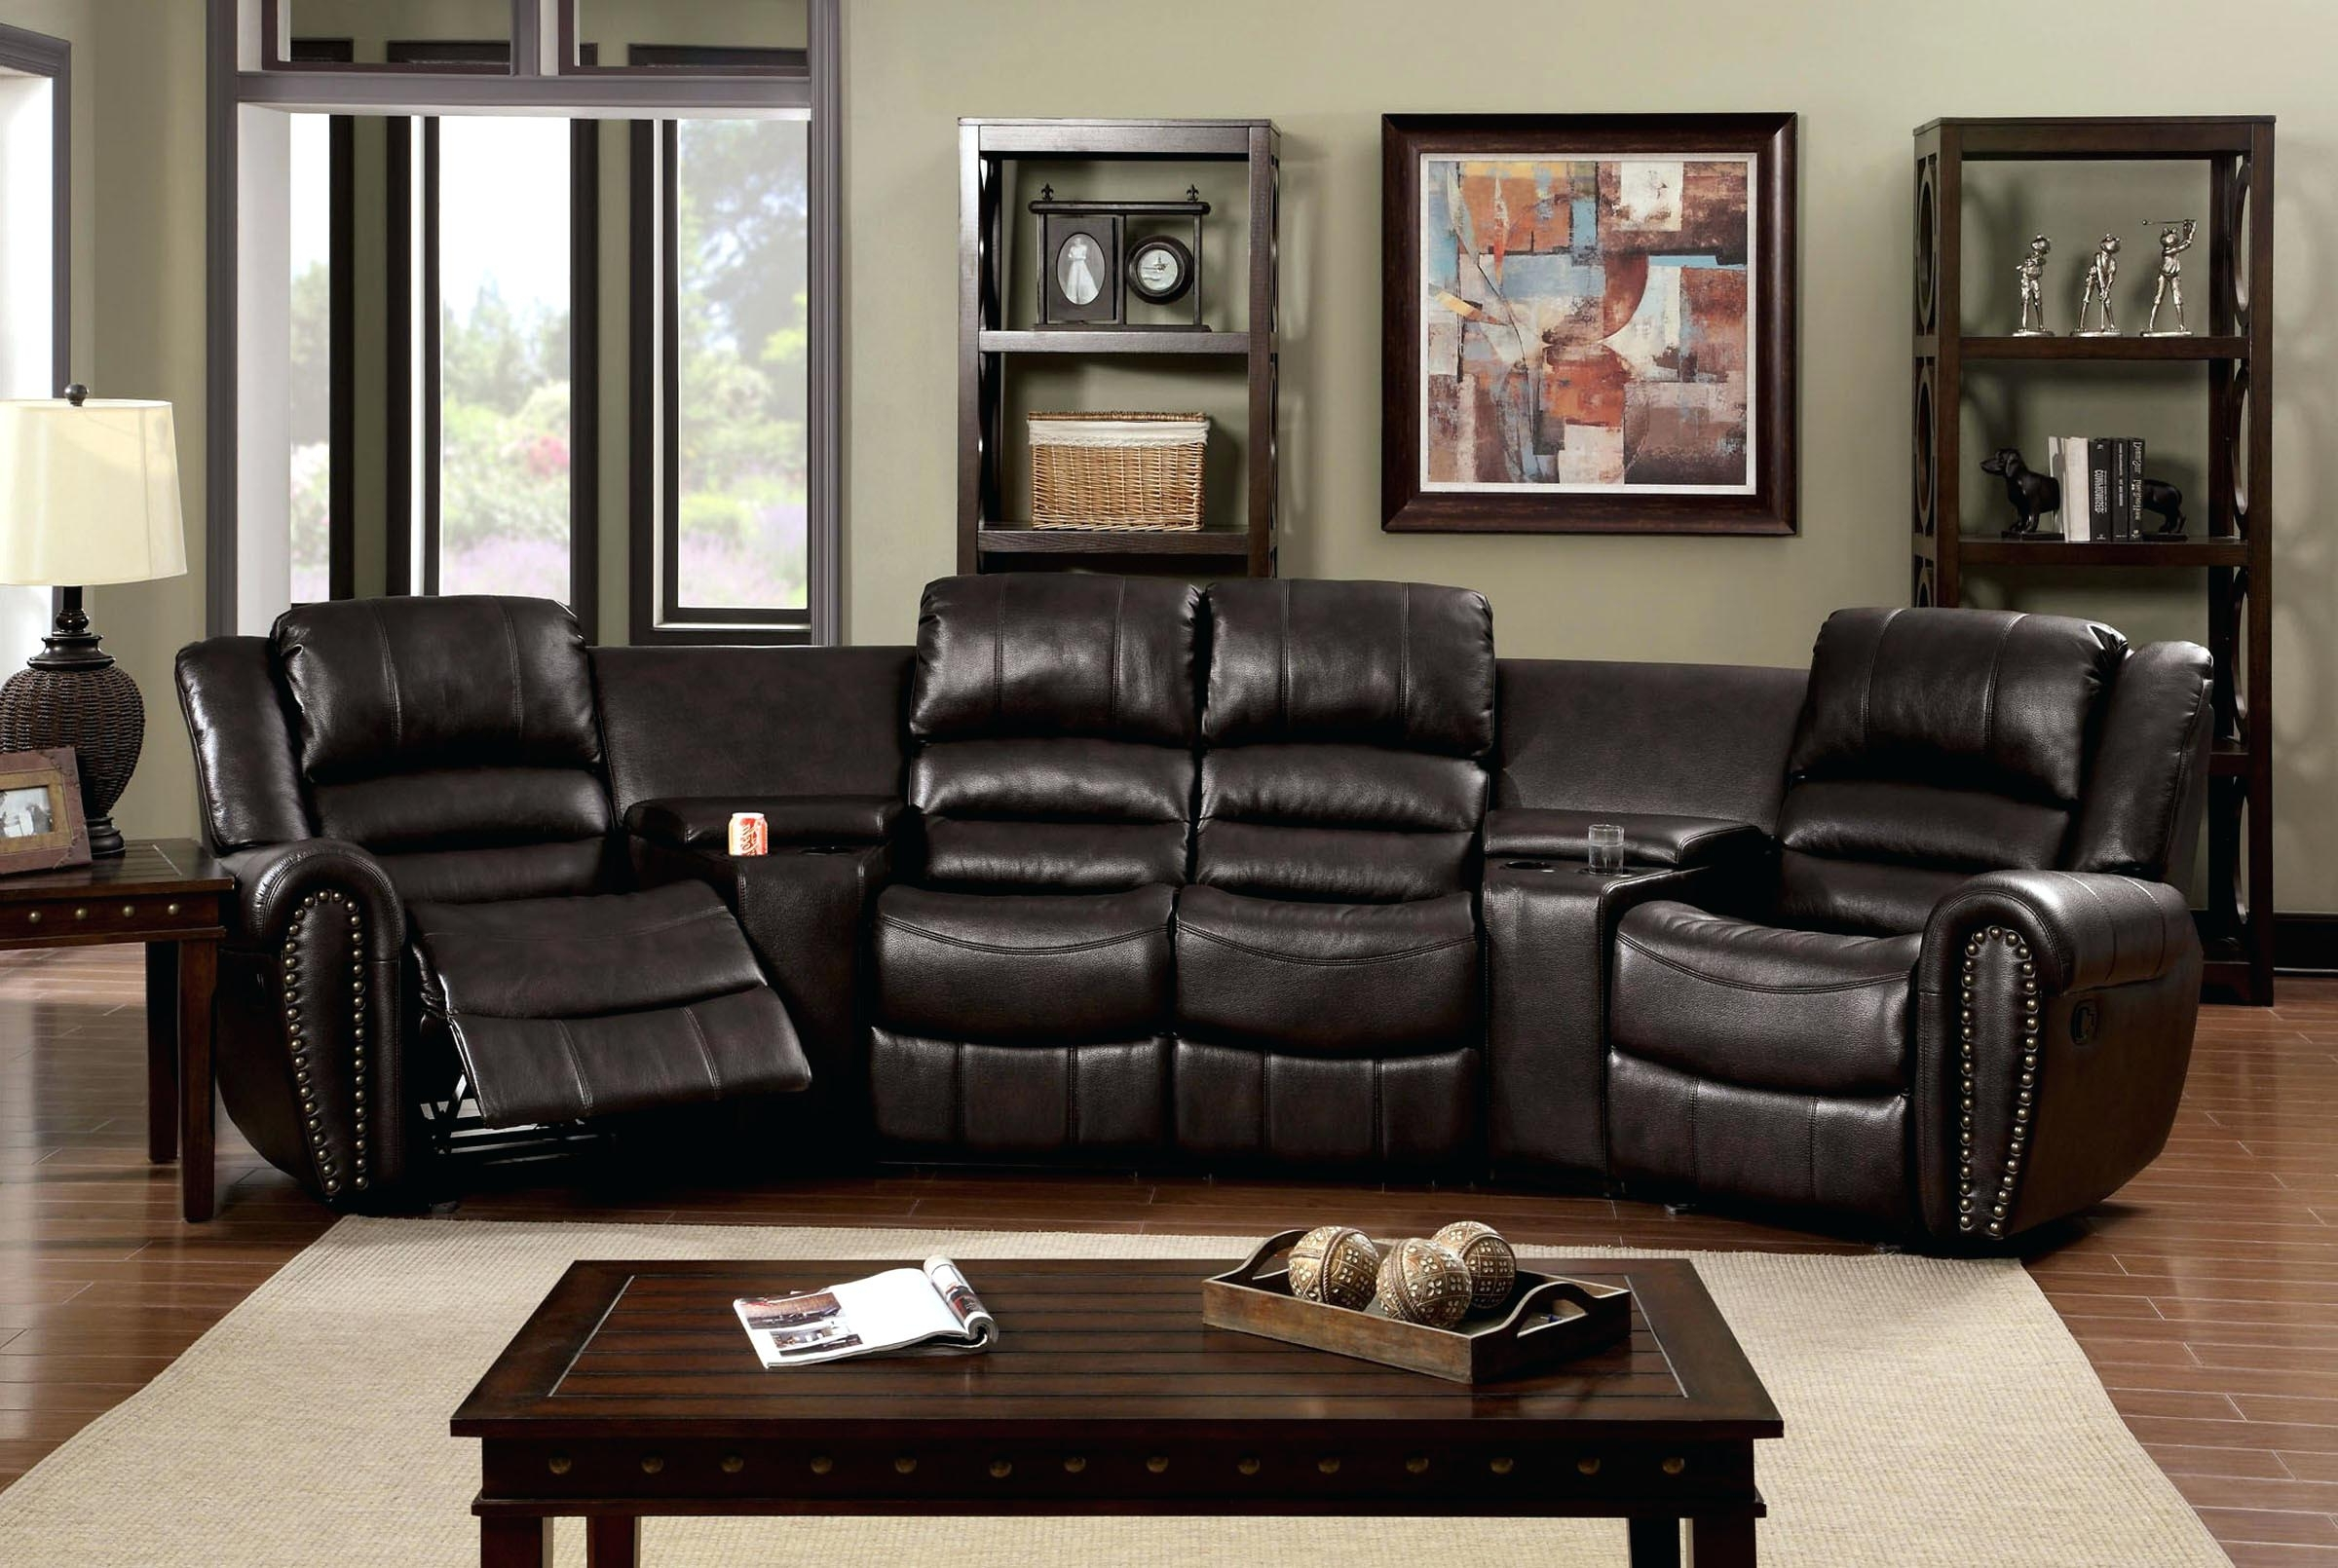 2017 Theatre Sectional Sofas Pertaining To Home Theater Seating Sectionals Home Theater Sectional Sofa Home (View 1 of 15)